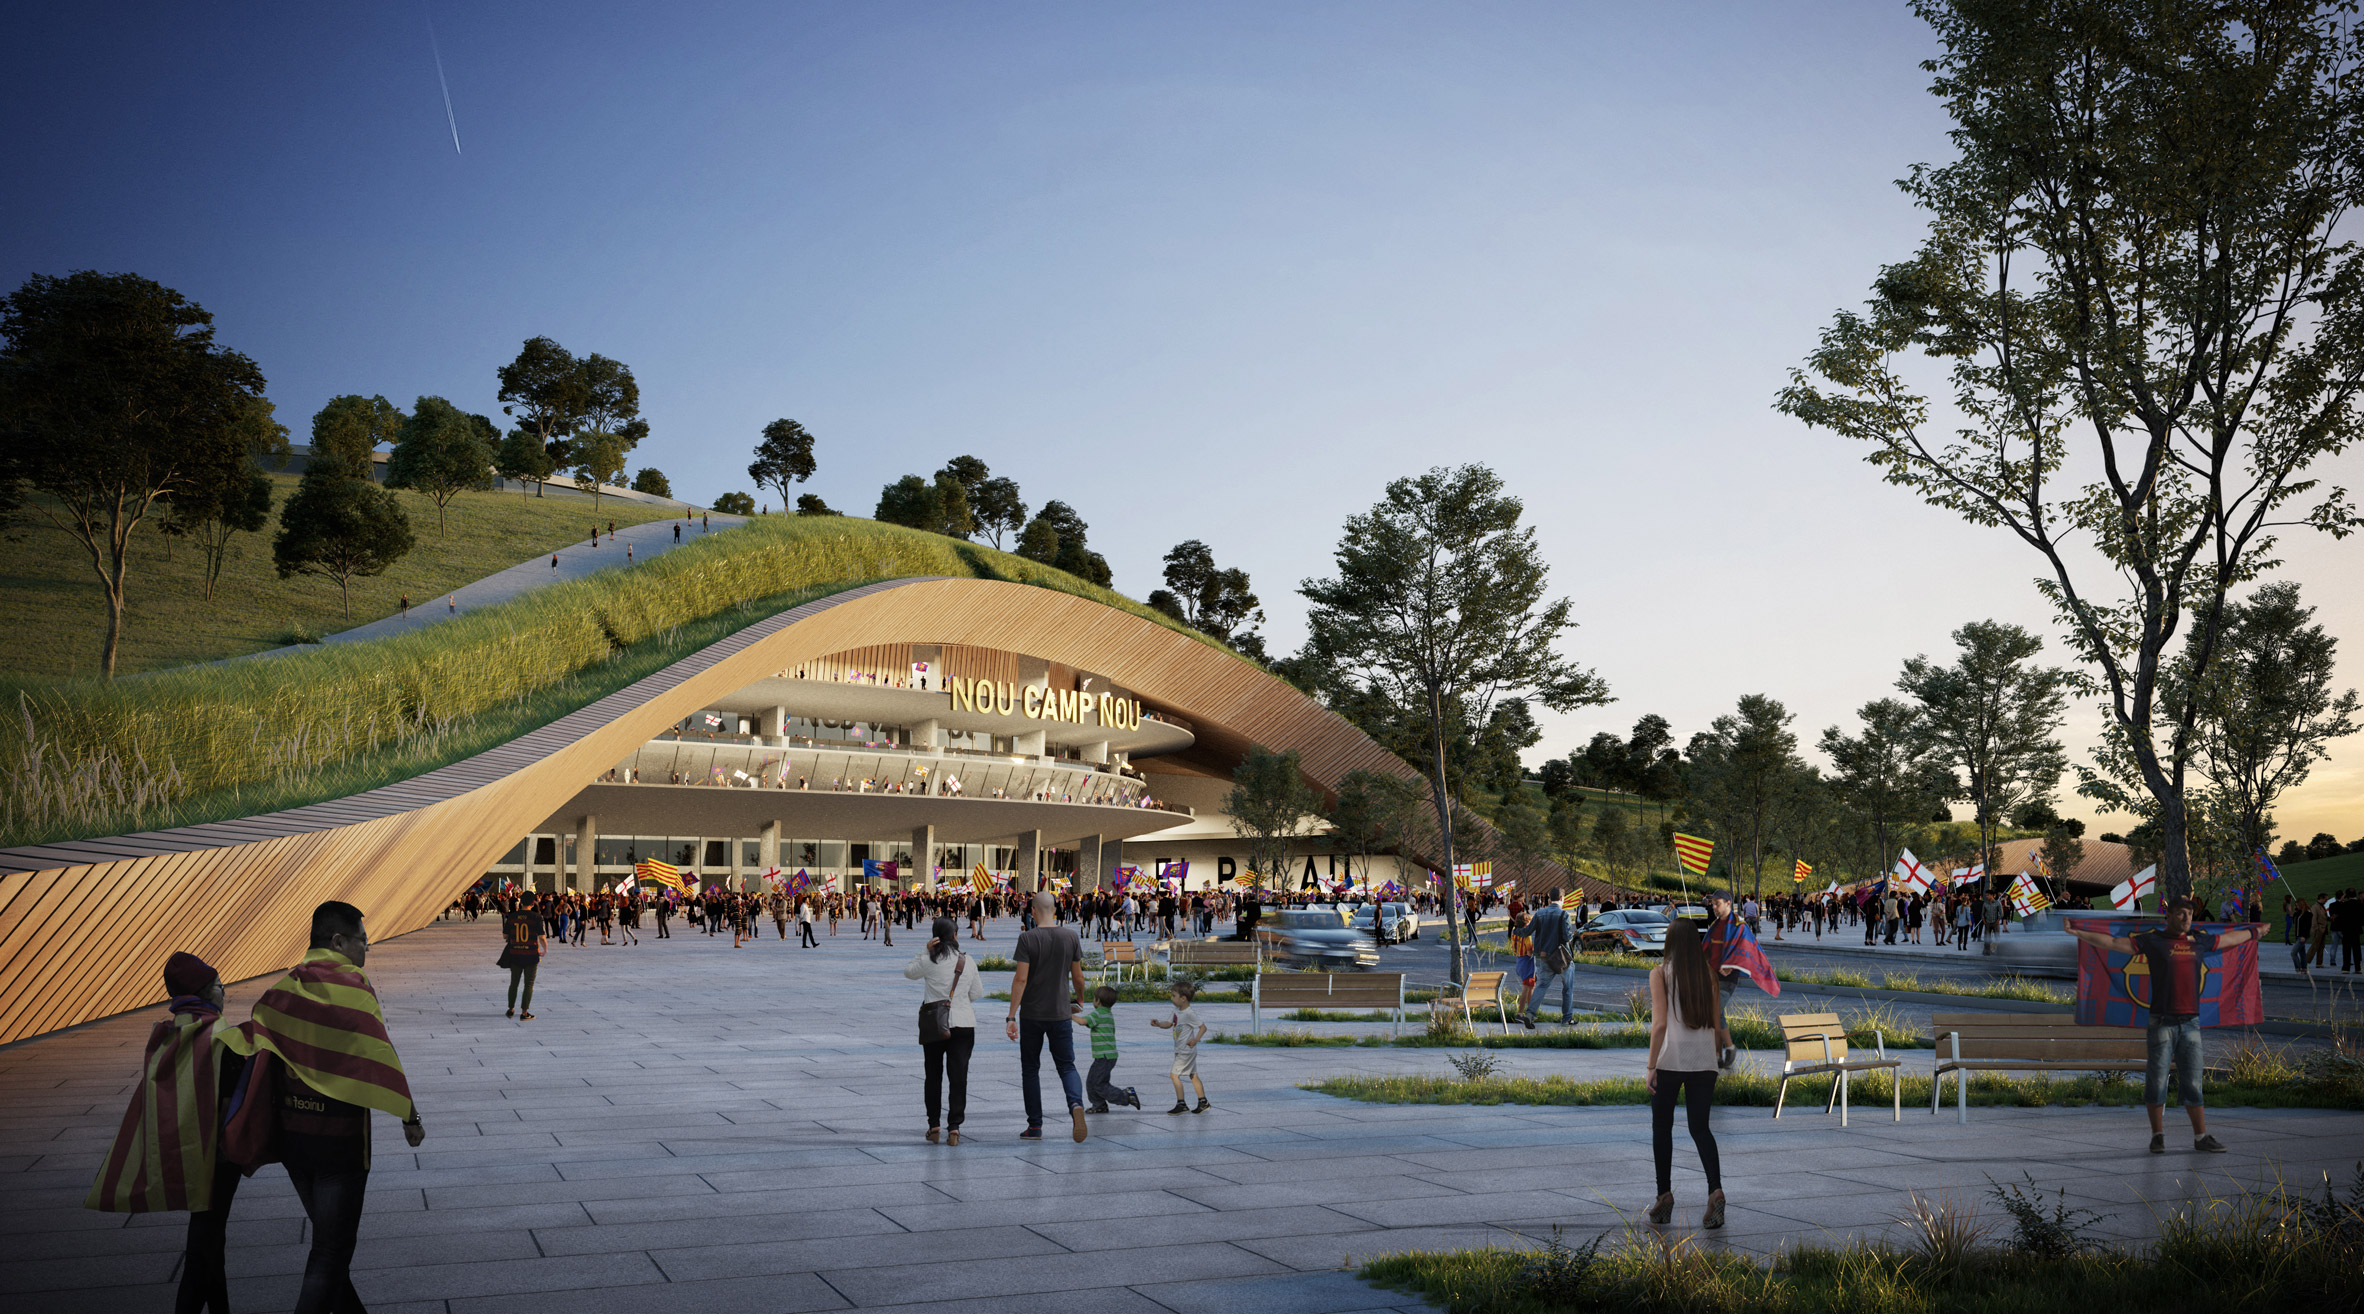 Nou Parc park at Nou Camp stadium in Barcelona by ON-A Architecture